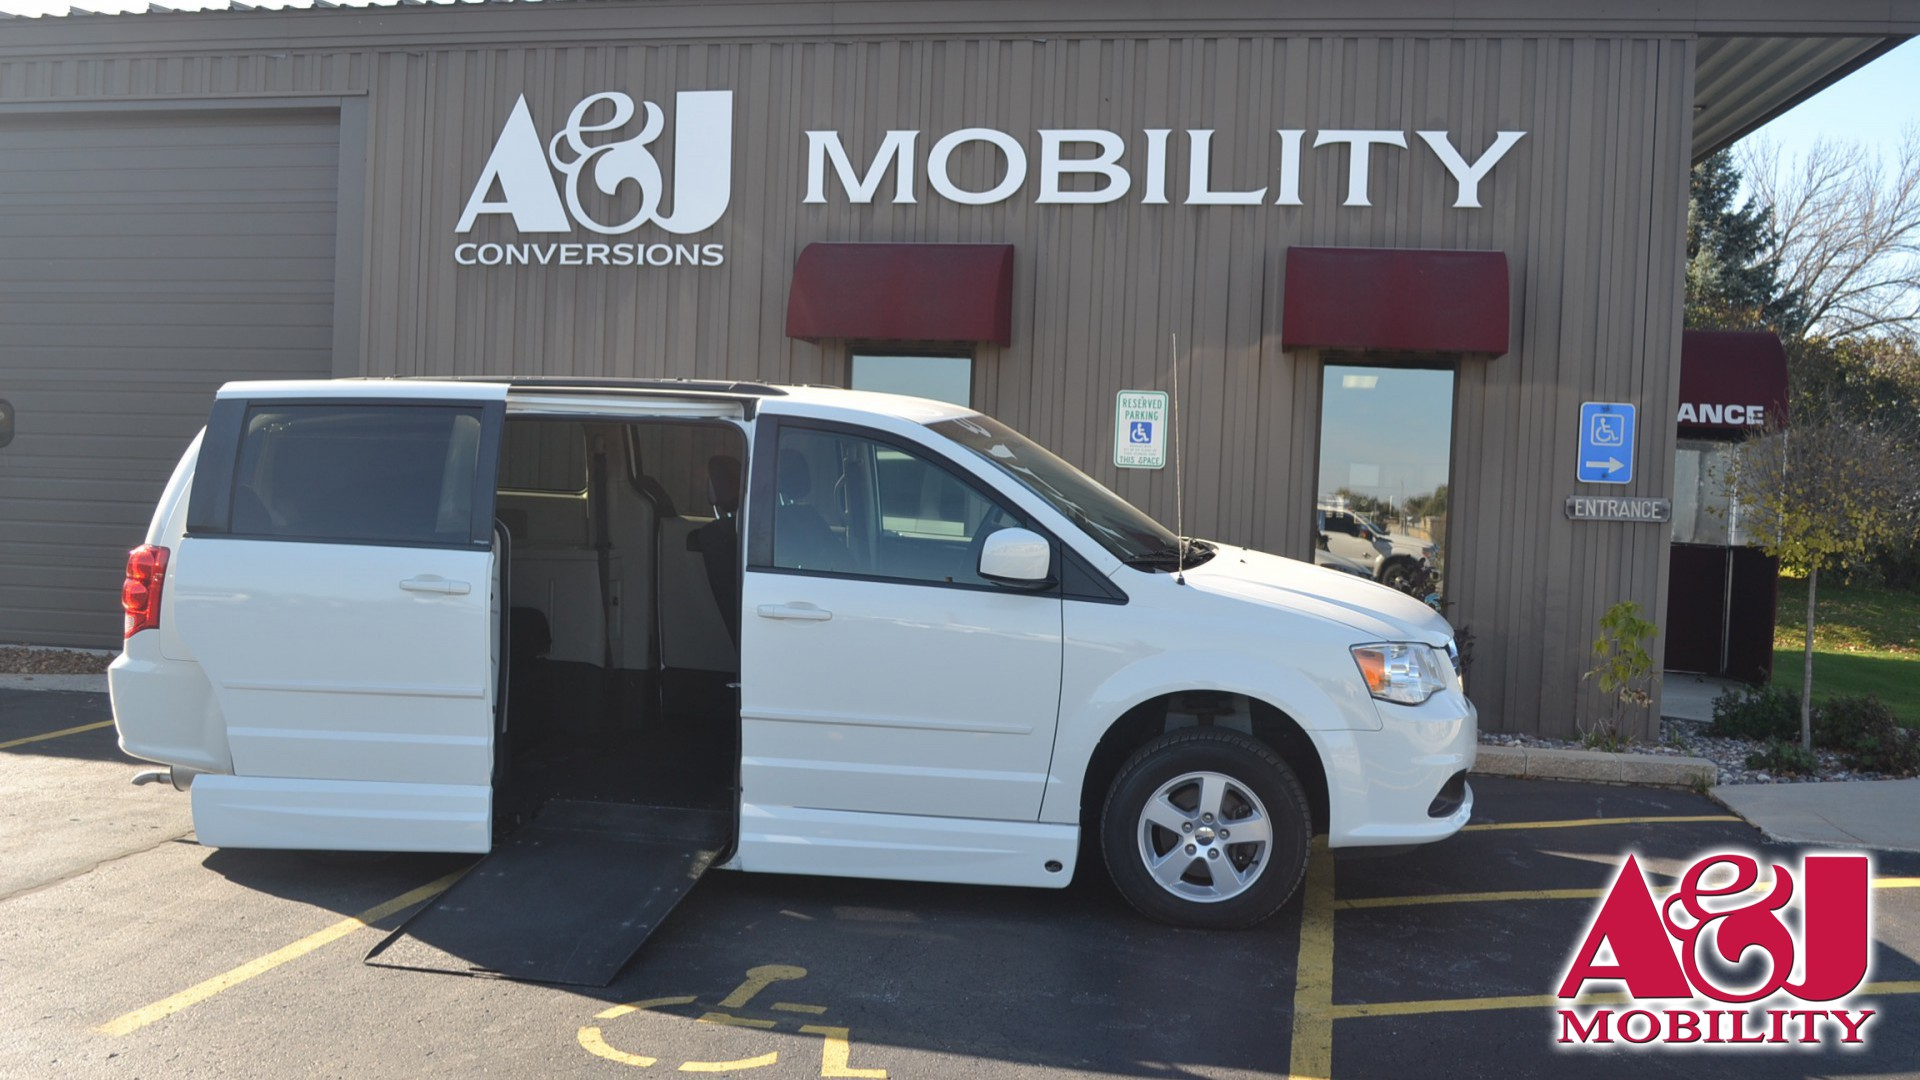 2012 Dodge Grand Caravan | Conversion: VMI Dodge Northstar